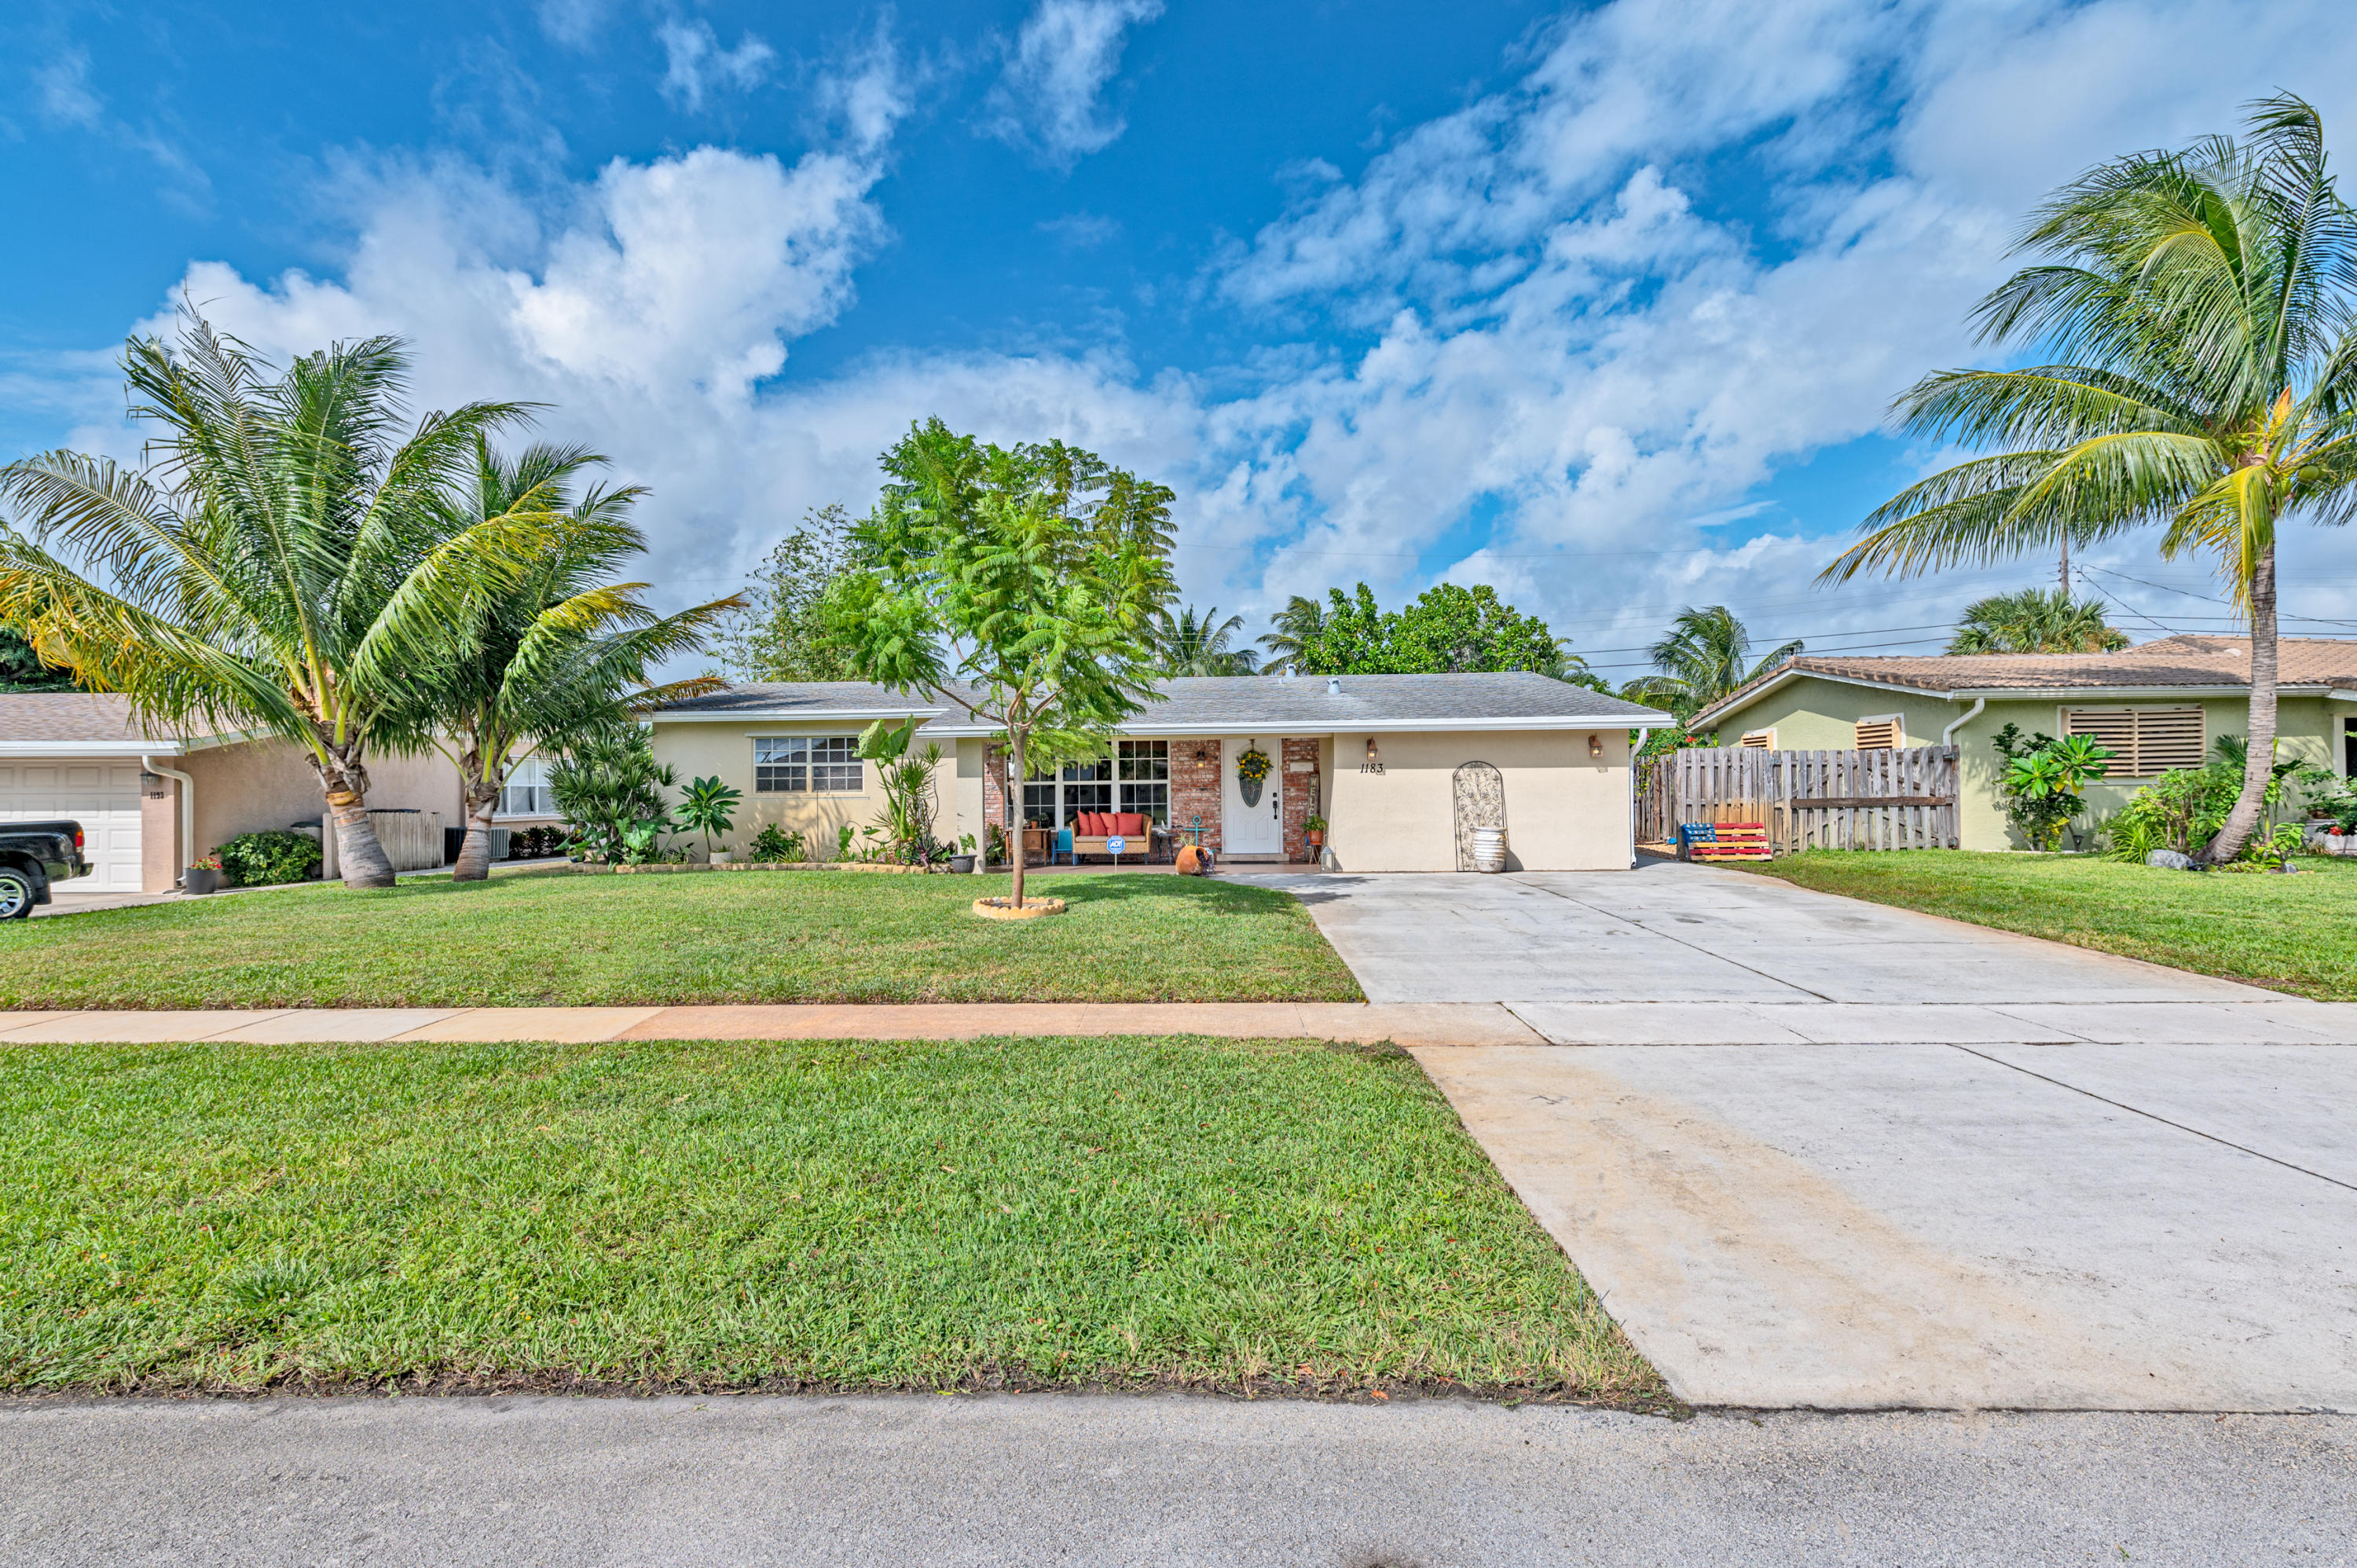 Photo of home for sale at 1183 1st Way SE, Deerfield Beach FL